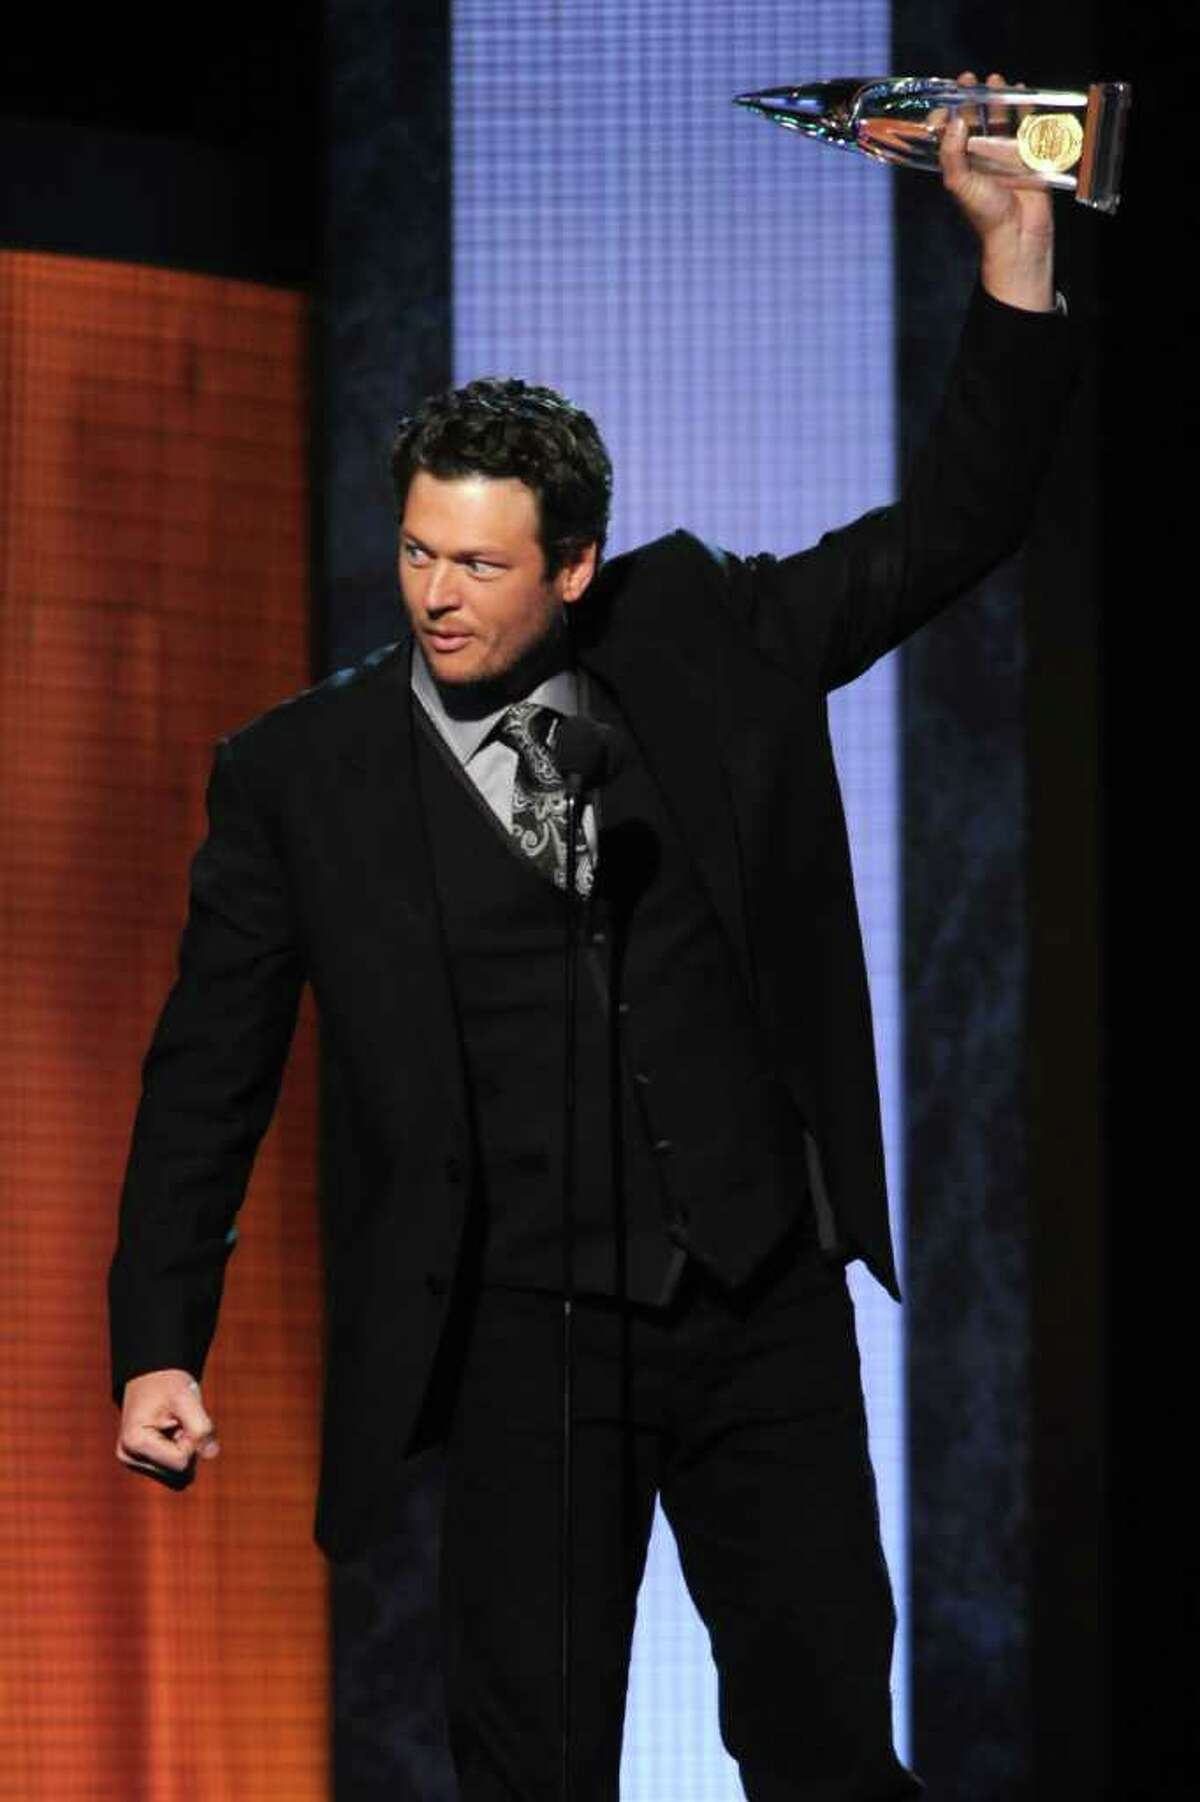 NASHVILLE, TN - NOVEMBER 10: Musician Blake Shelton accepts award for Male Vocalist of the Year at the 44th Annual CMA Awards at the Bridgestone Arena on November 10, 2010 in Nashville, Tennessee. (Photo by Rick Diamond/Getty Images) *** Local Caption *** Blake Shelton